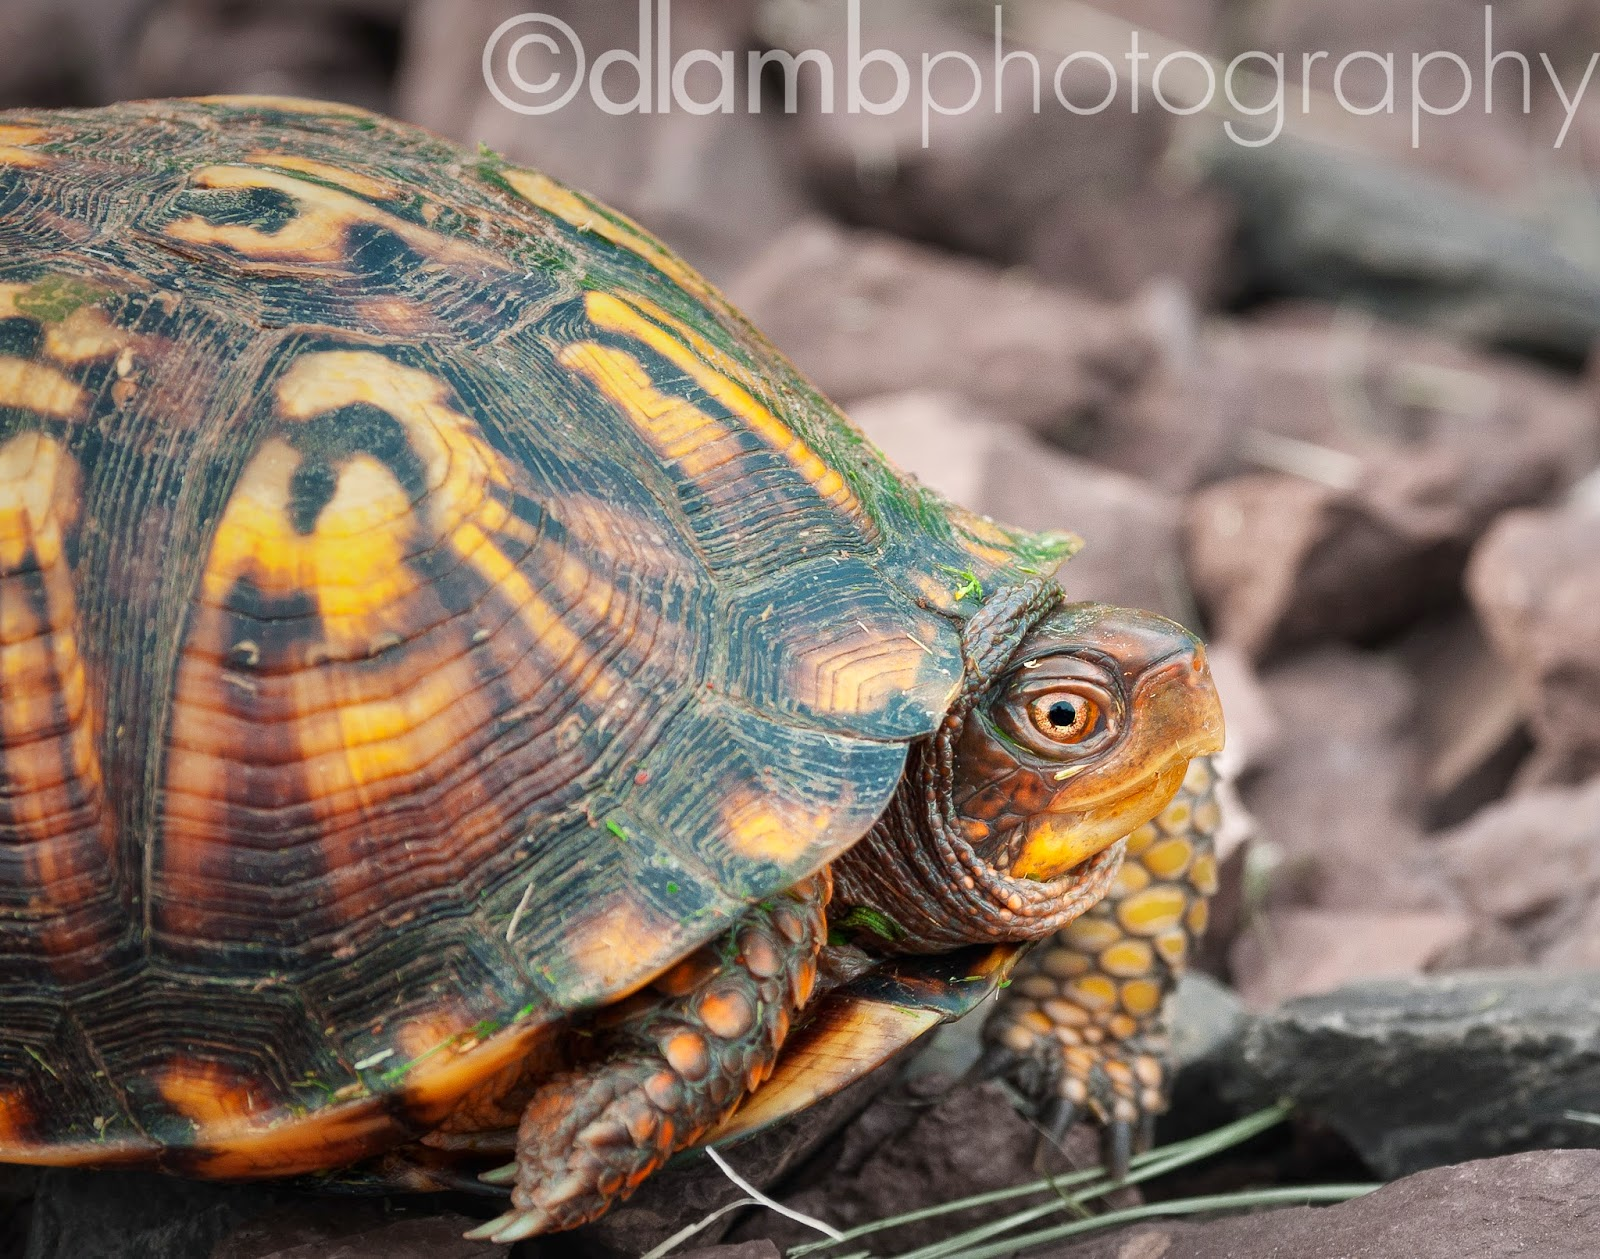 http://david-lamb.artistwebsites.com/featured/eastern-box-turtle-david-lamb.html